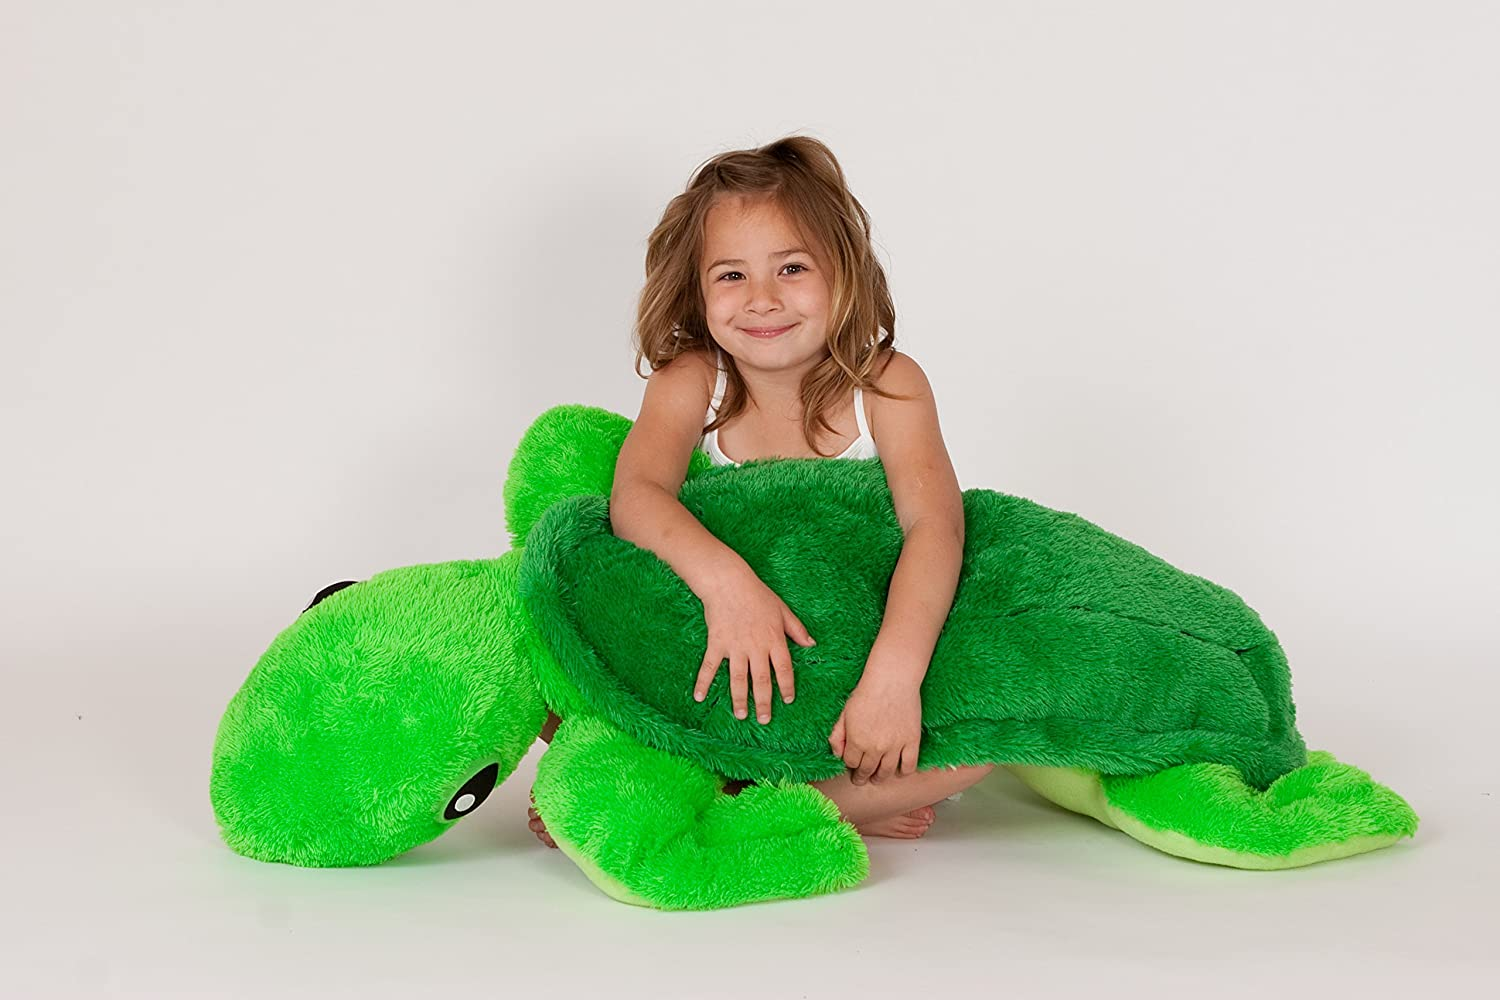 My Feeding Friend - Grow With You Nursing Pillow - Turtle by My Feeding Friend   B008FRDKTS